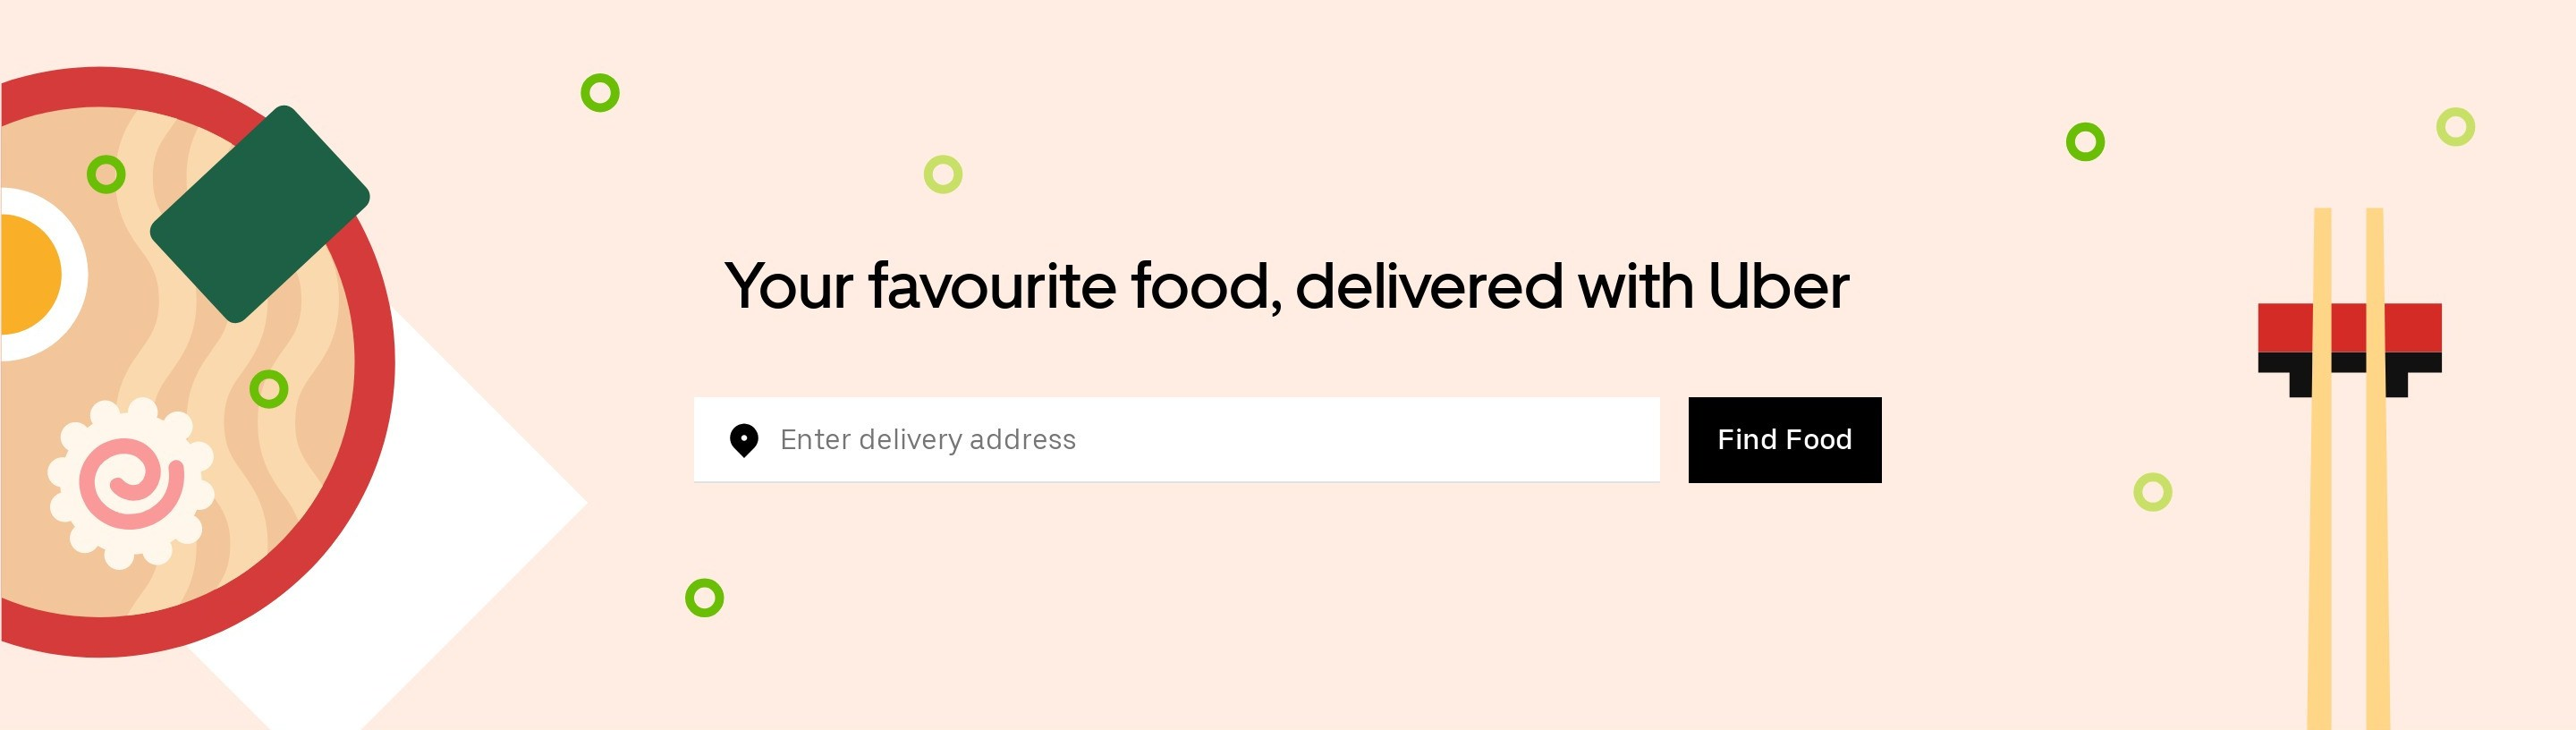 Delivery Address CTA Block to Order Food